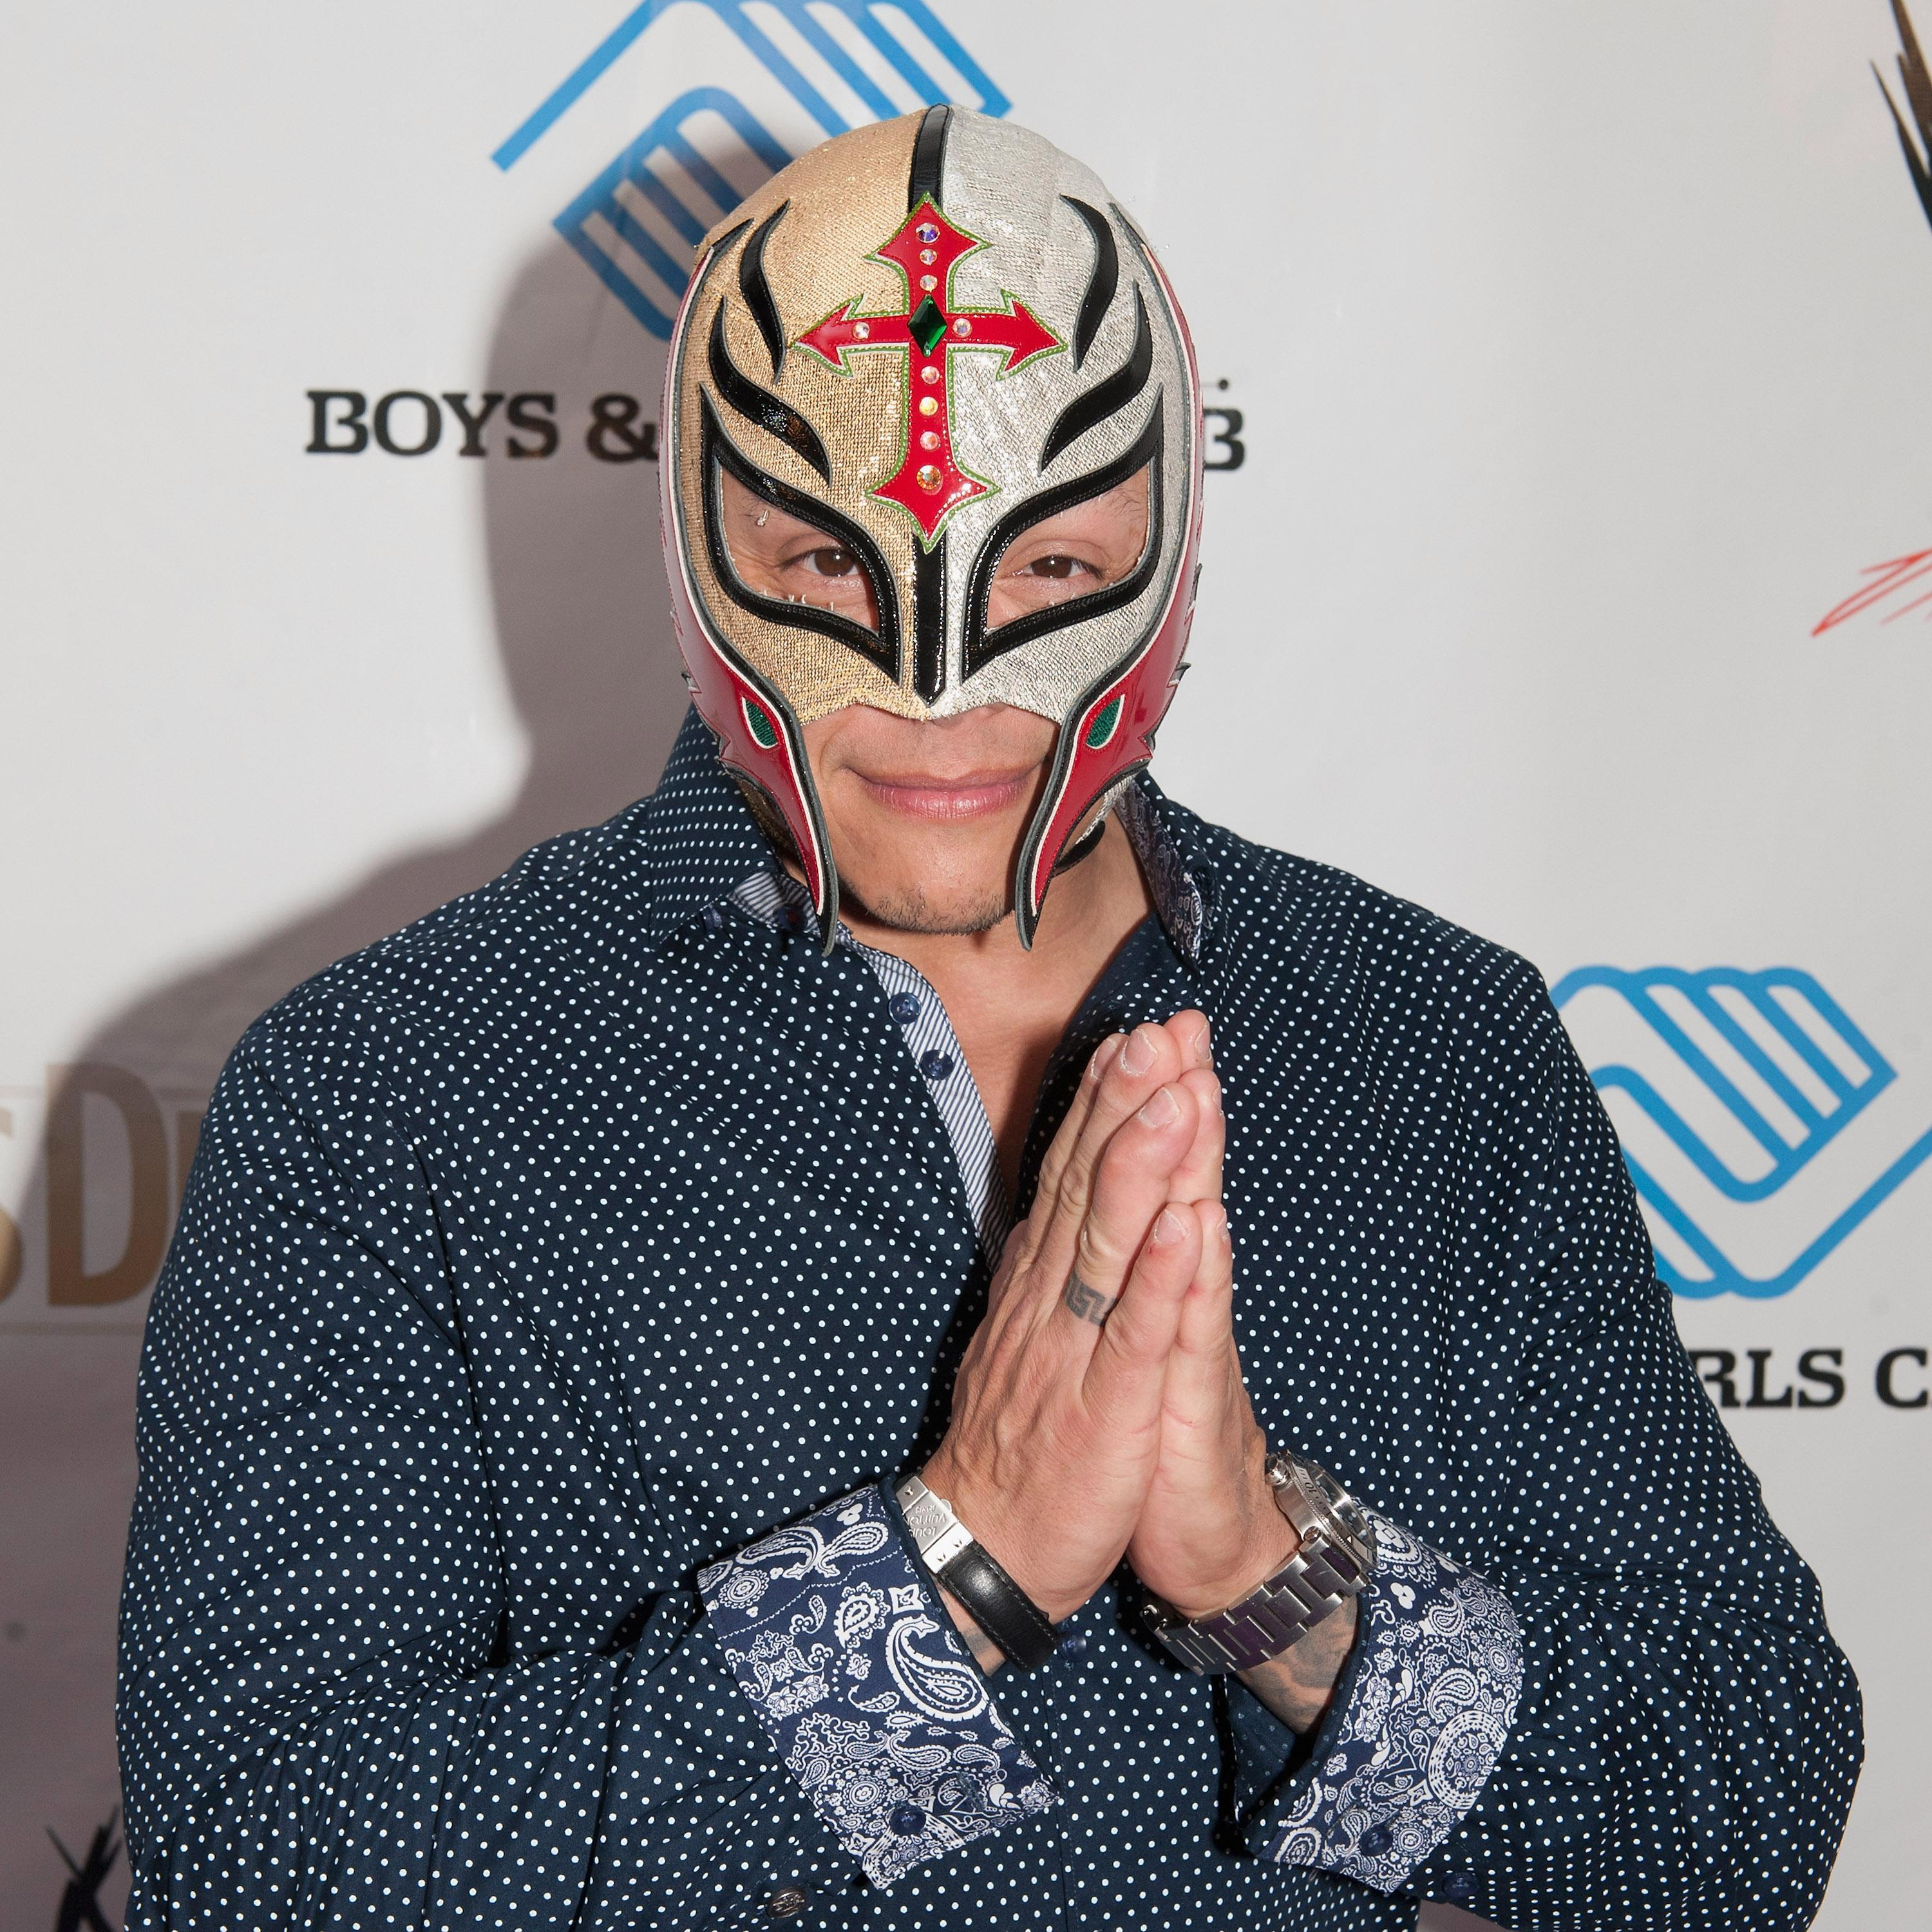 Rey Mysterio reveals he will likely re-sign with WWE following shock Royal Rumble appearance